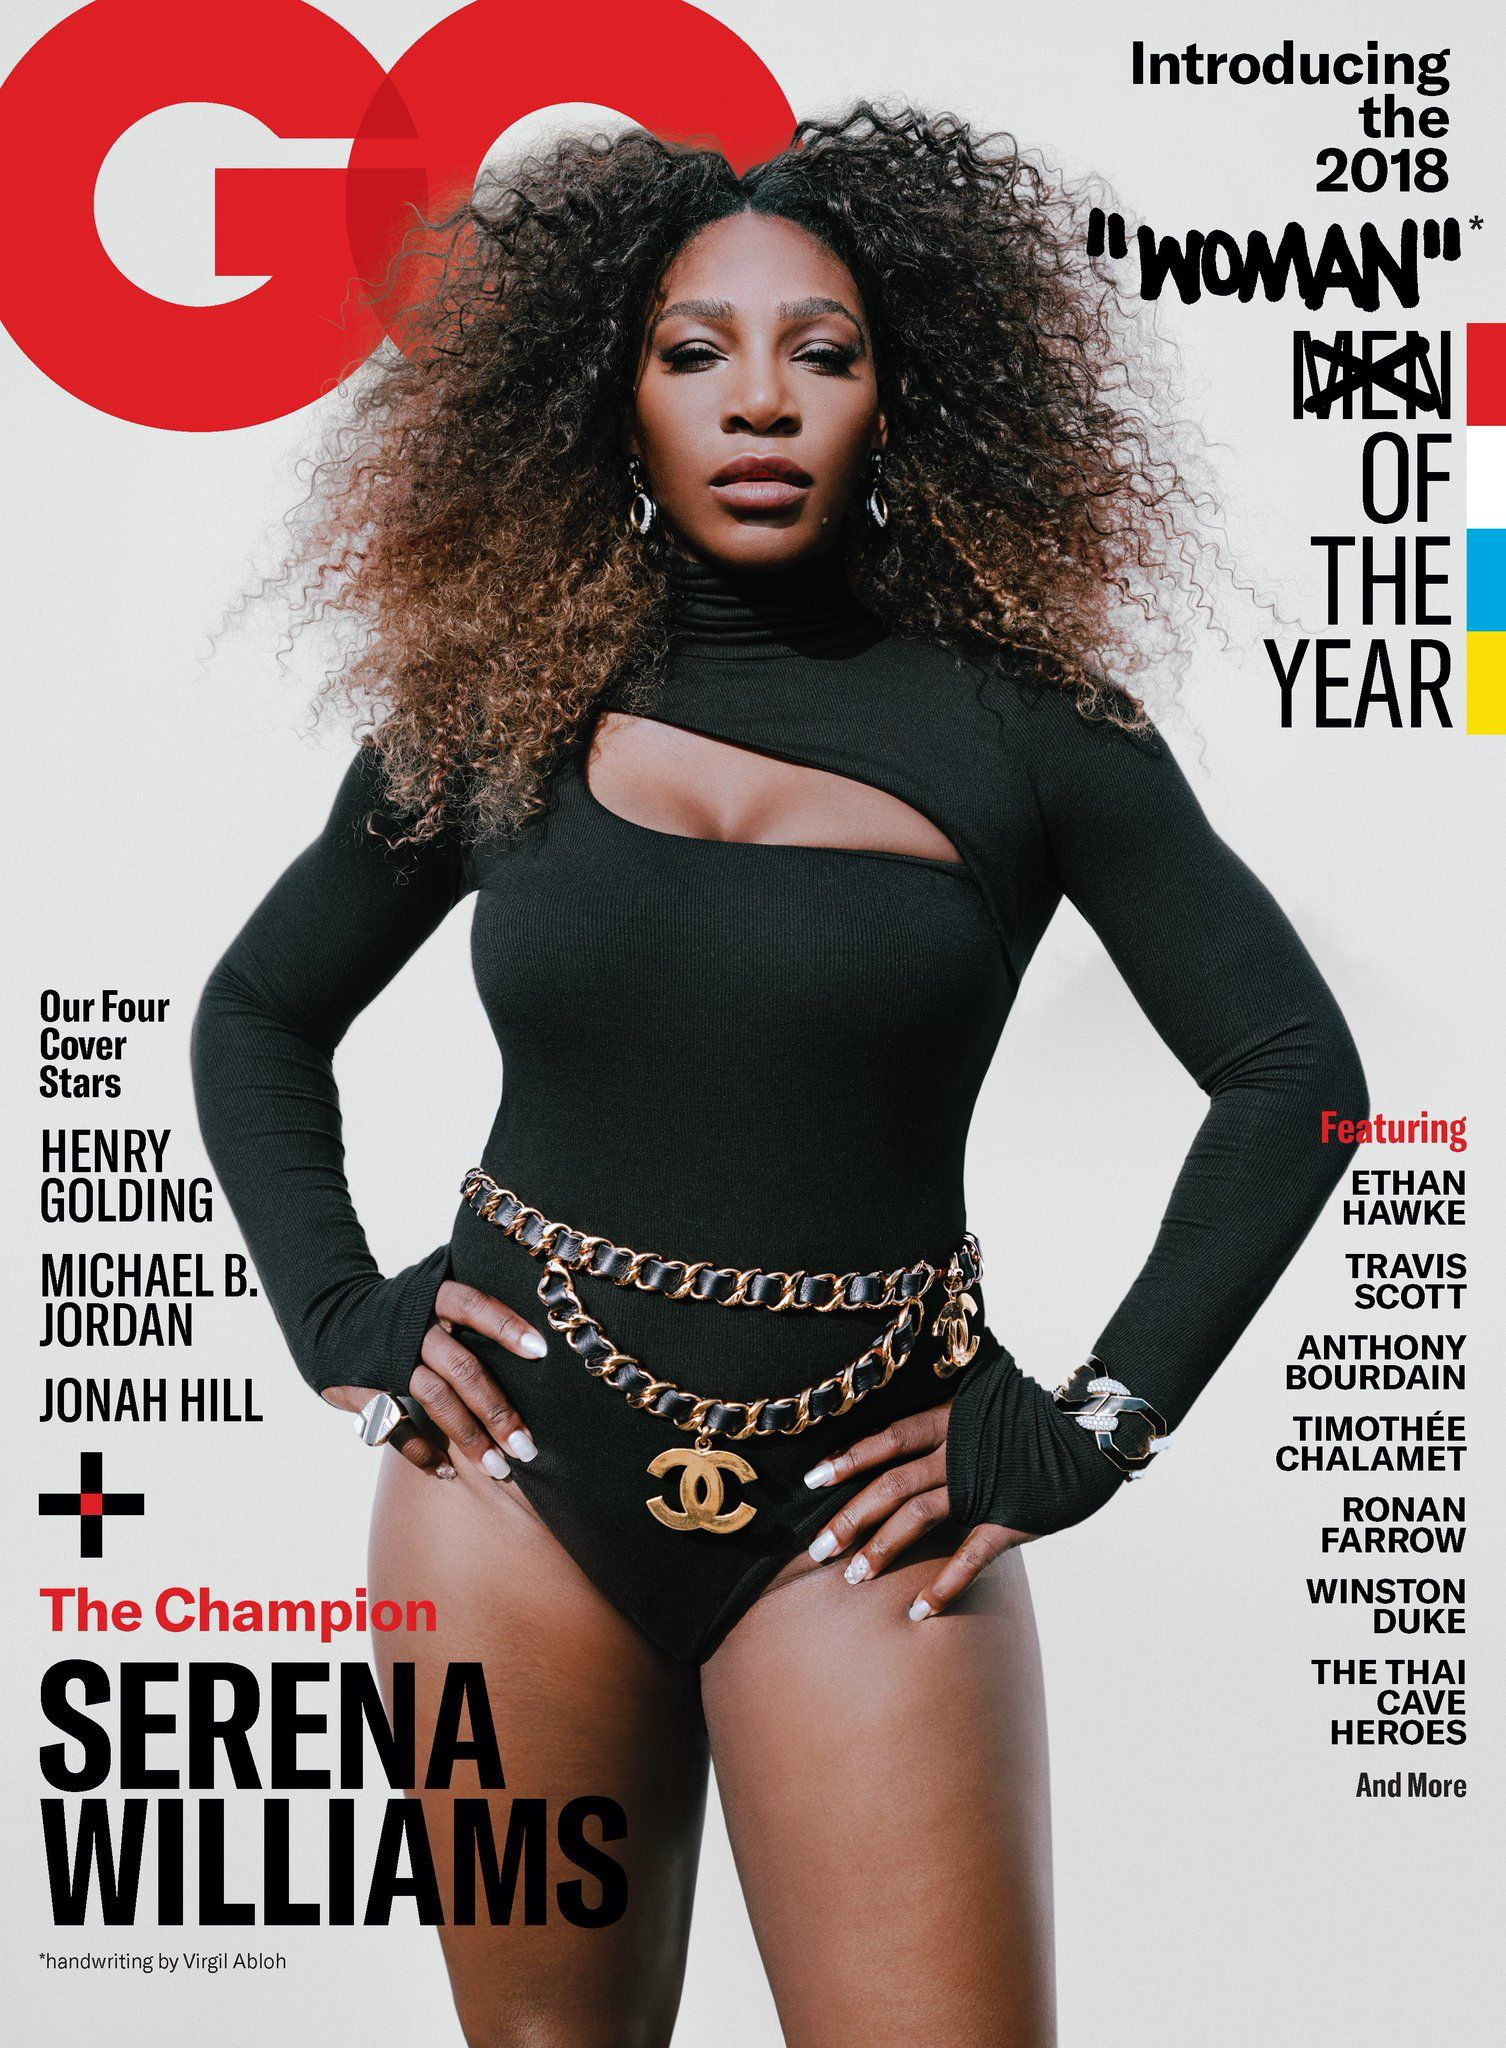 from Emiliano serena williams playboy pictures